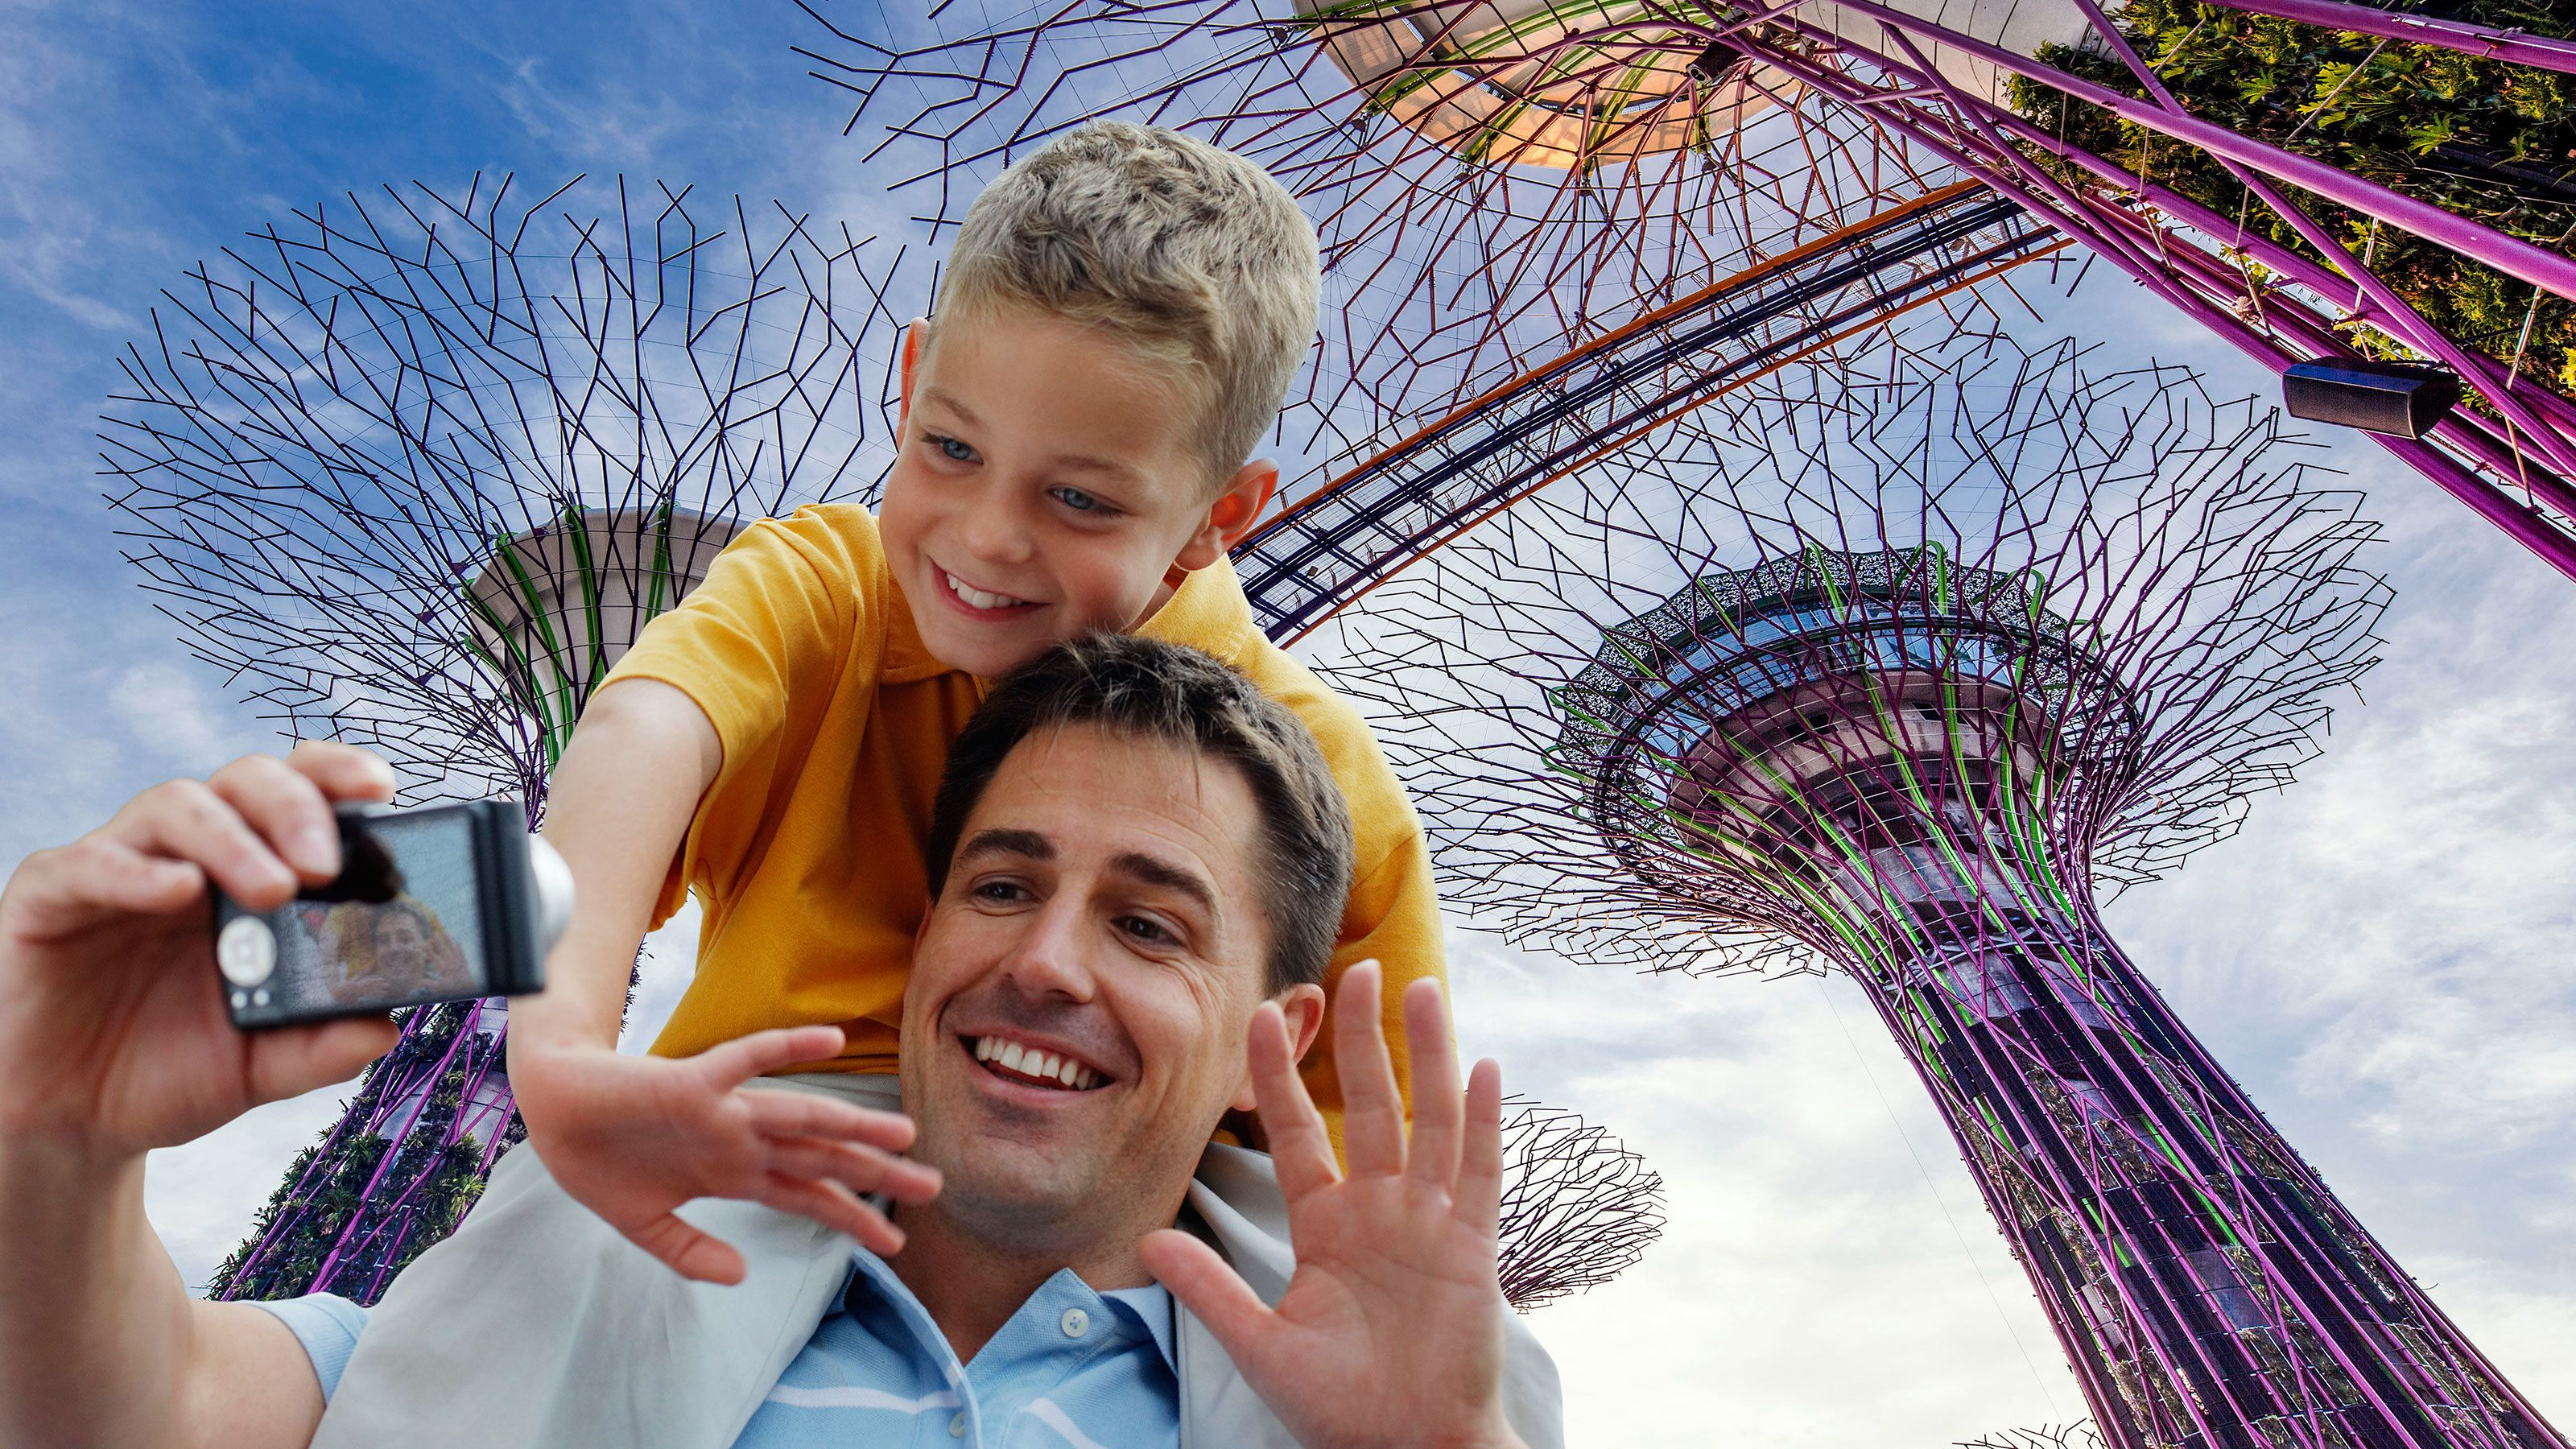 Gardens by the Bay, Marina Bay Sands & River Cruise Tour